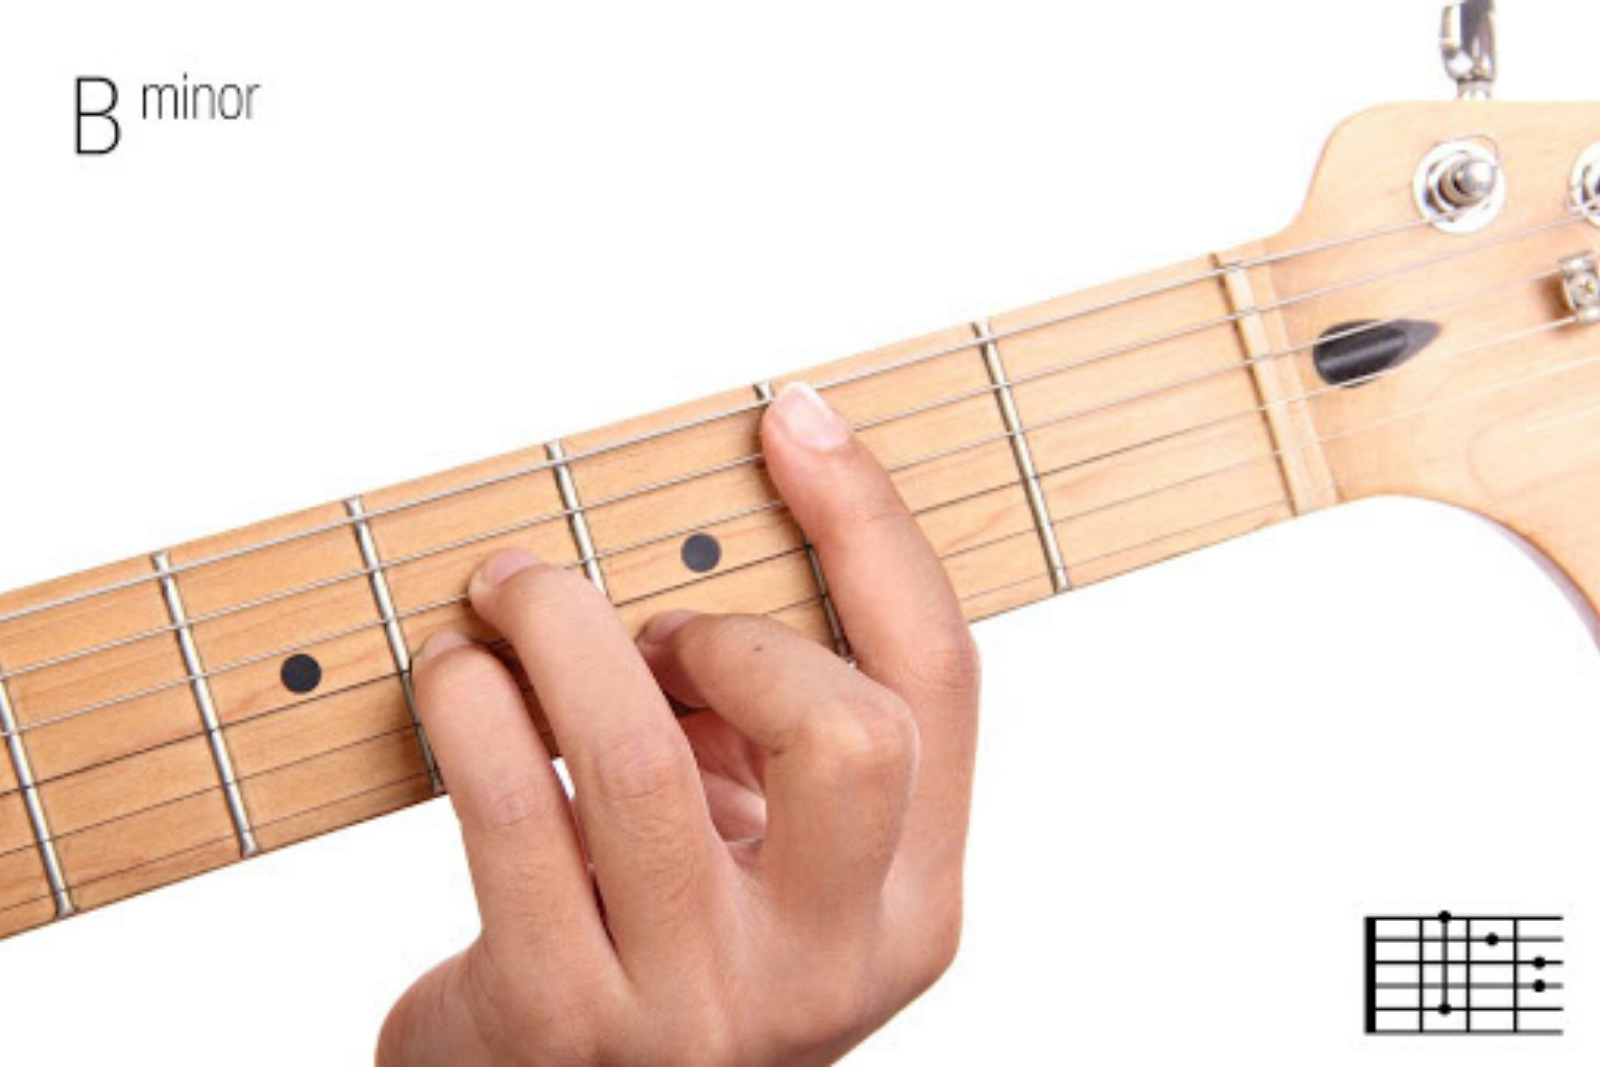 B Minor | Mastering The 10 Most Important Guitar Chords For Beginners